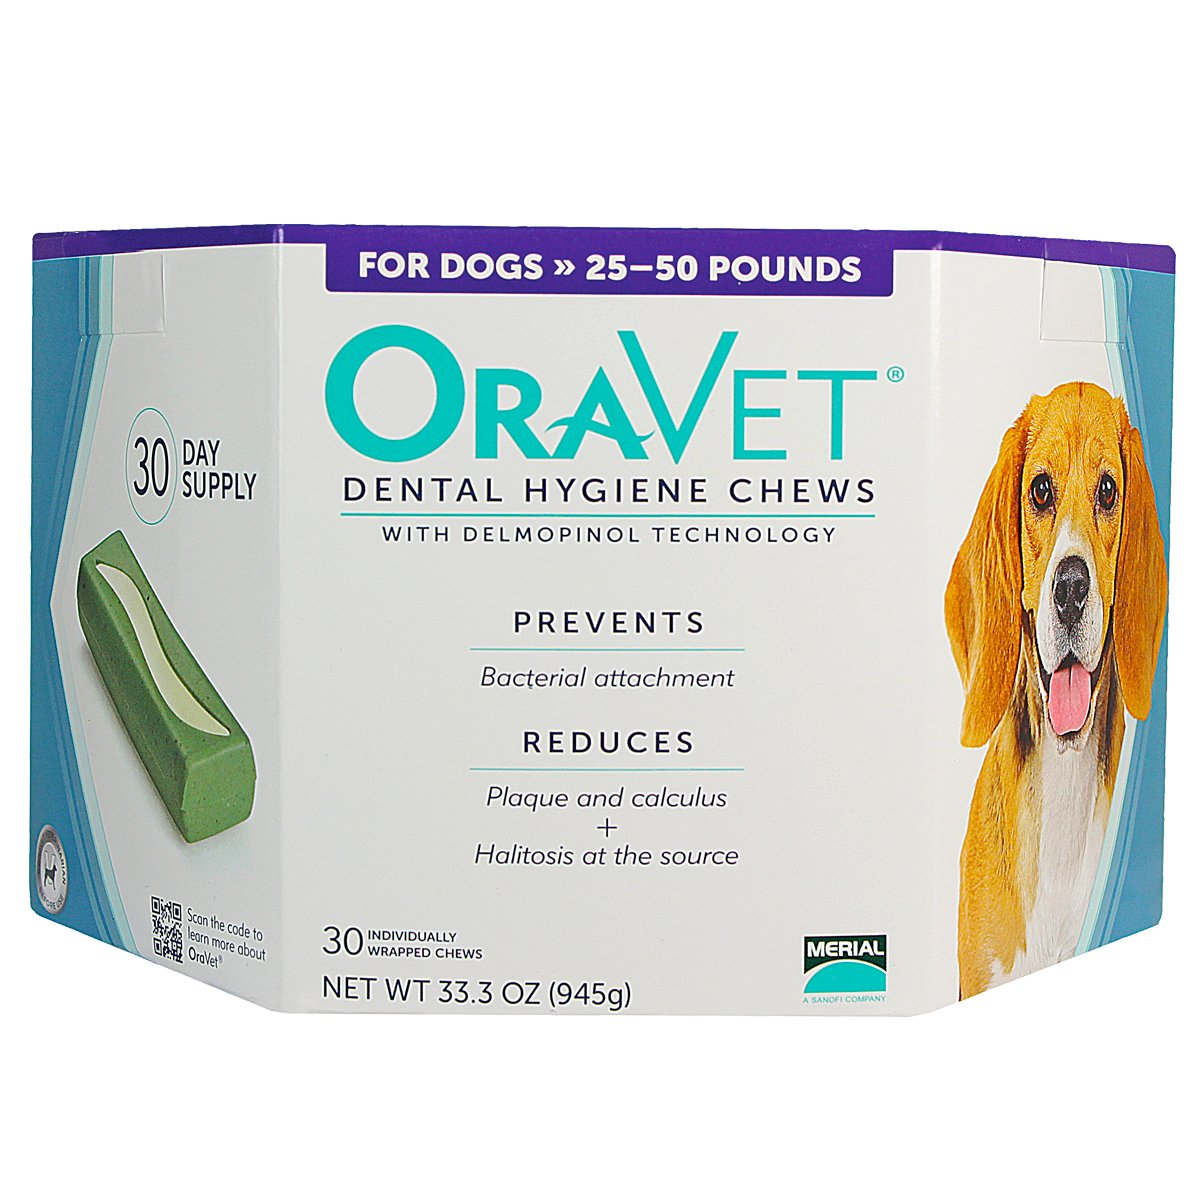 Oravet Dental Hygiene Chews, 25-50 lb, 30 ct, 3 pk + $8, off purchase with attached rebate form.